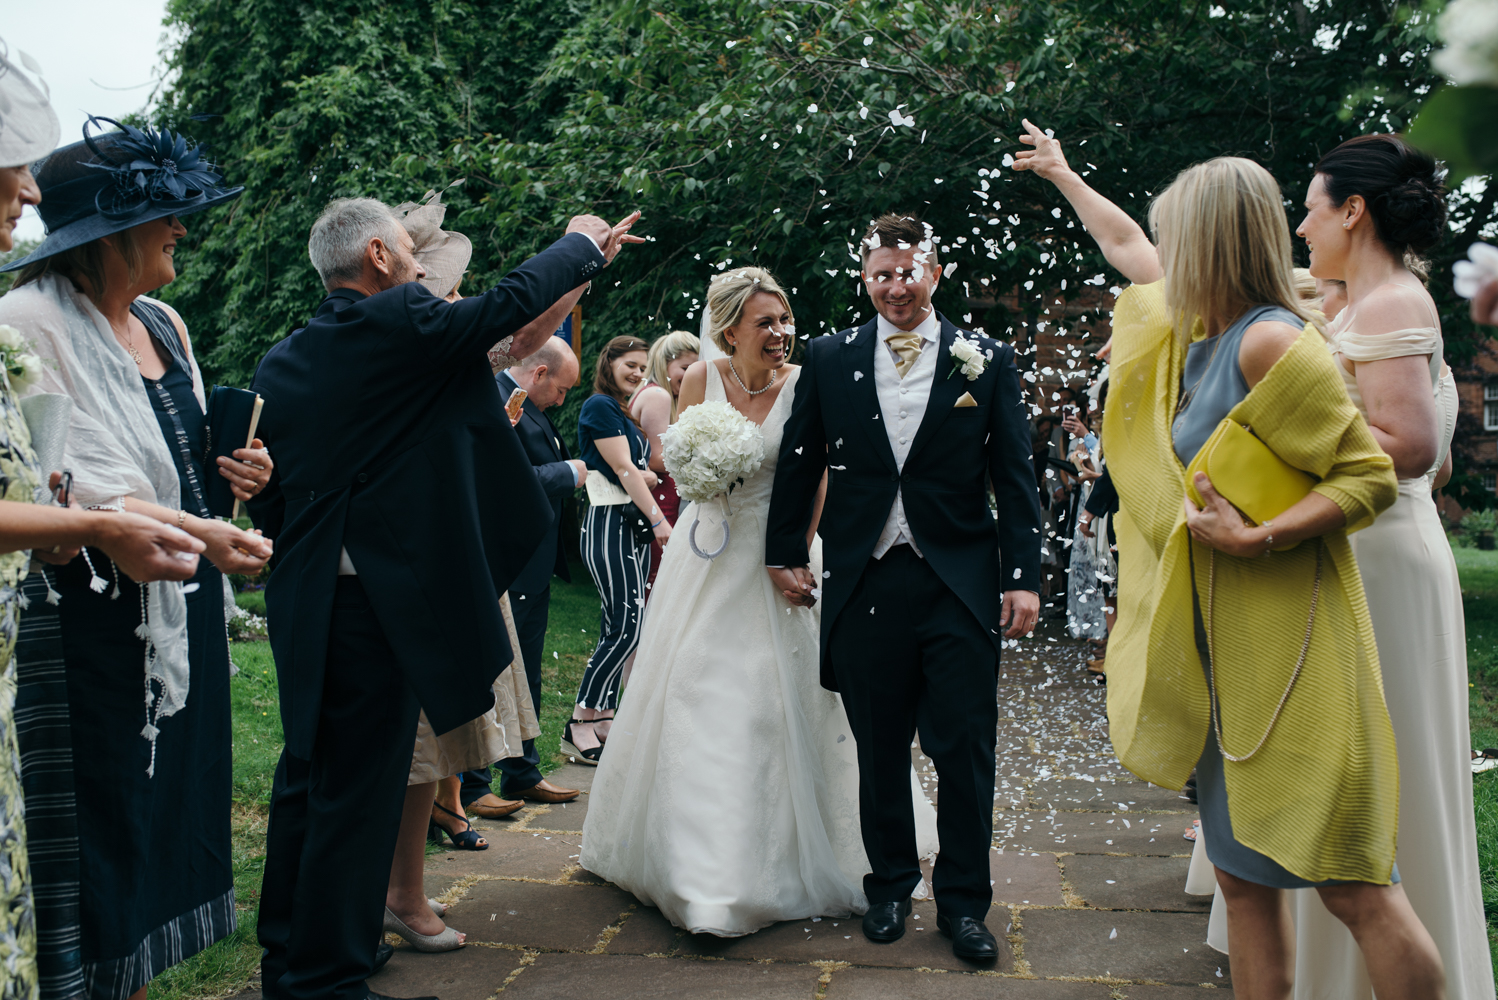 The bride and groom walking through the confetti shower